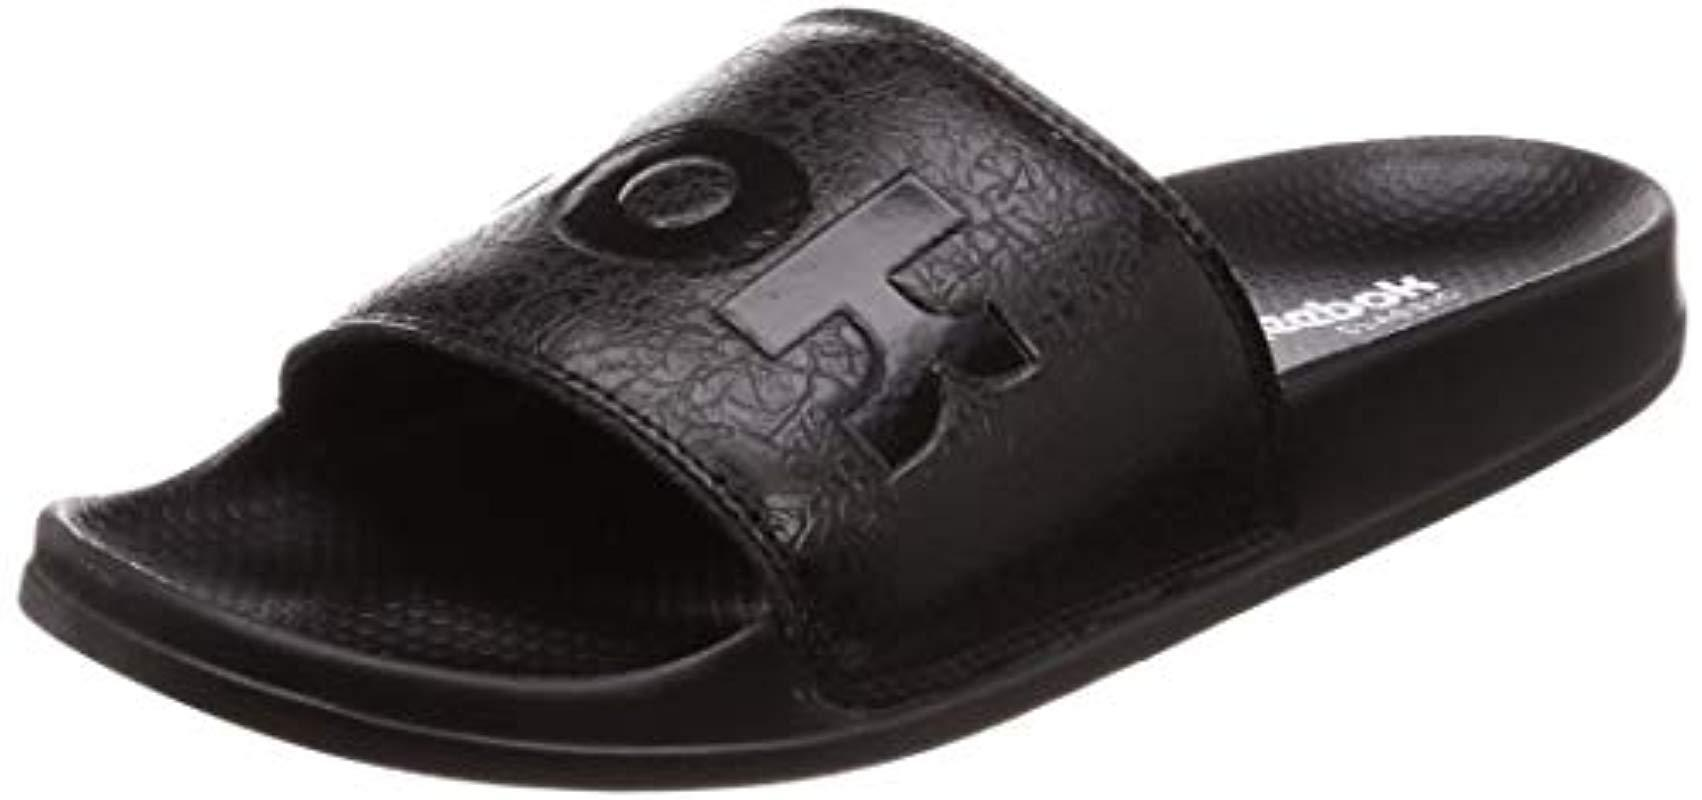 23848f1d8c54ab Reebok Unisex Adults Classic Slide Beach   Pool Shoes in Black for ...